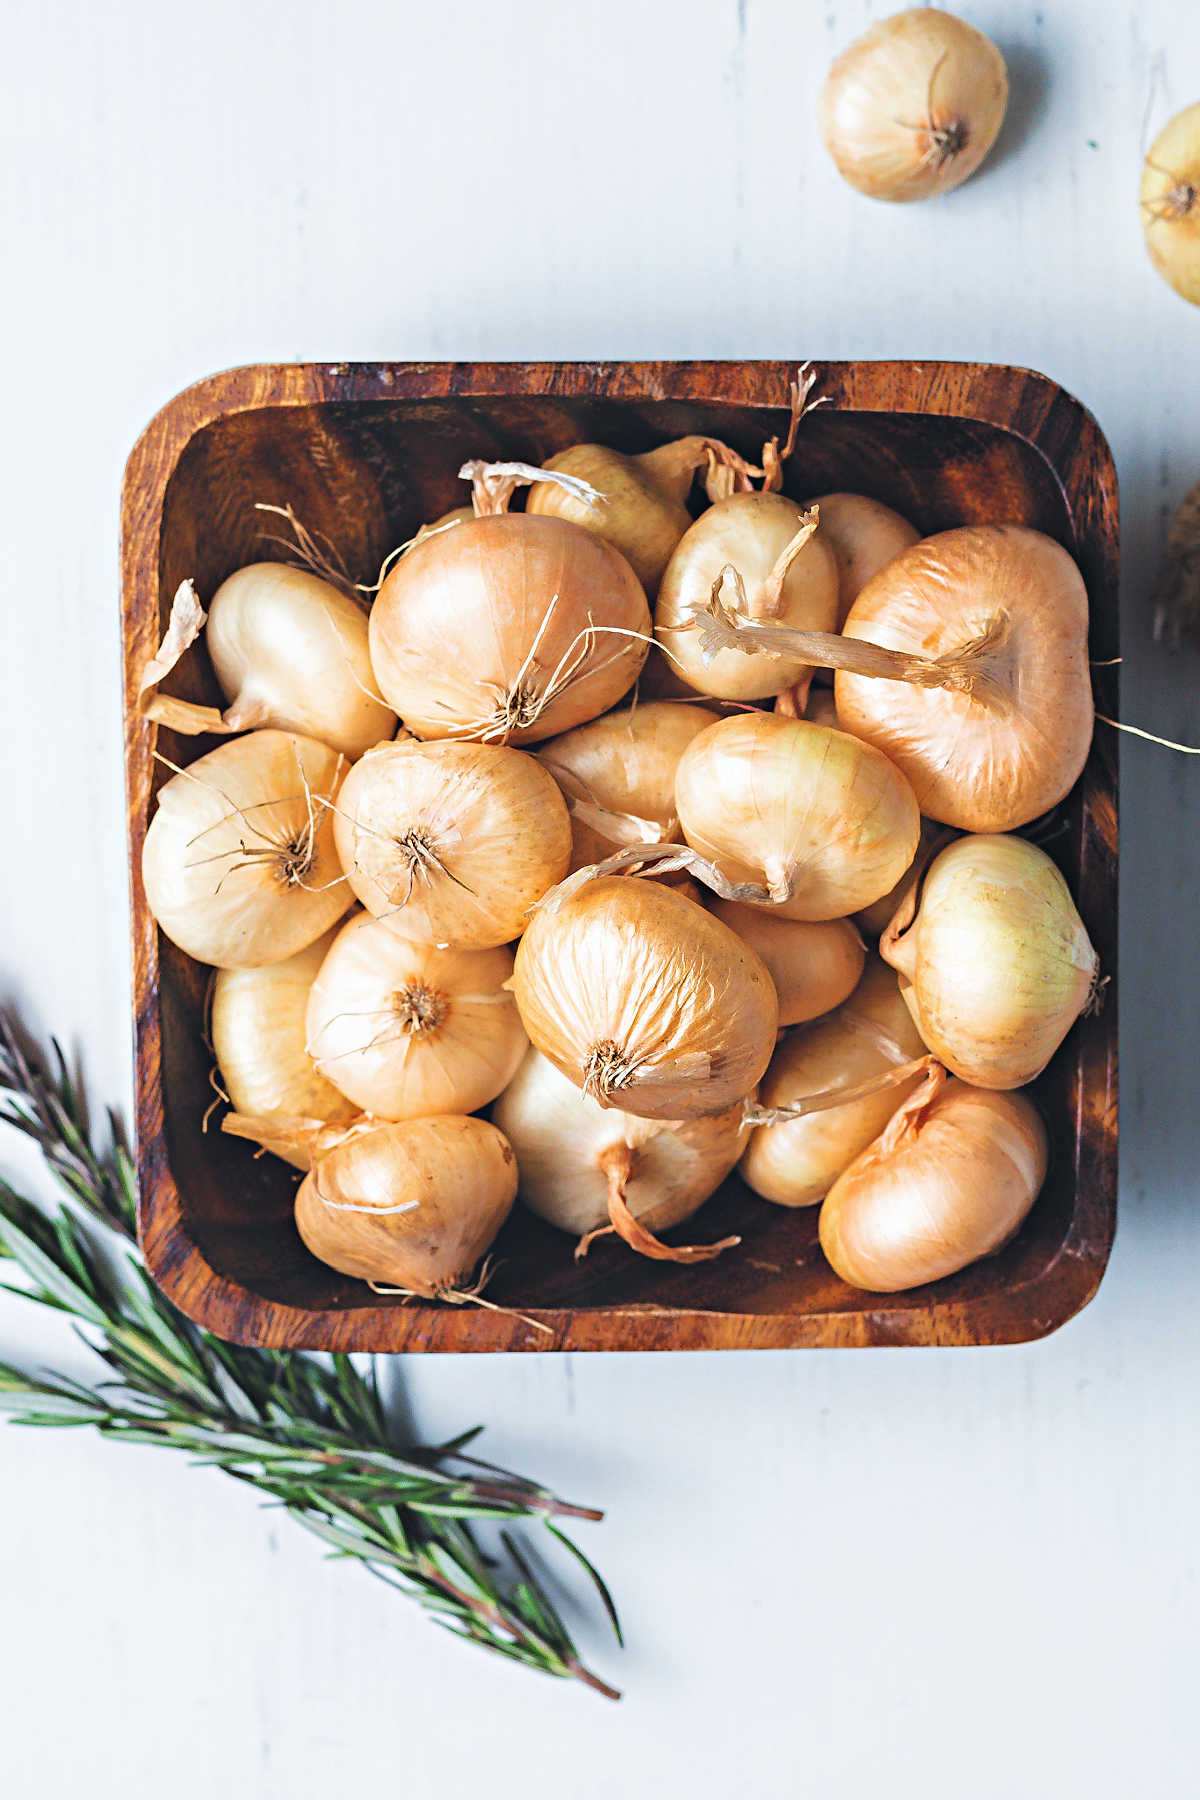 a wooden bowl on a table filled with uncooked cipolline onions.